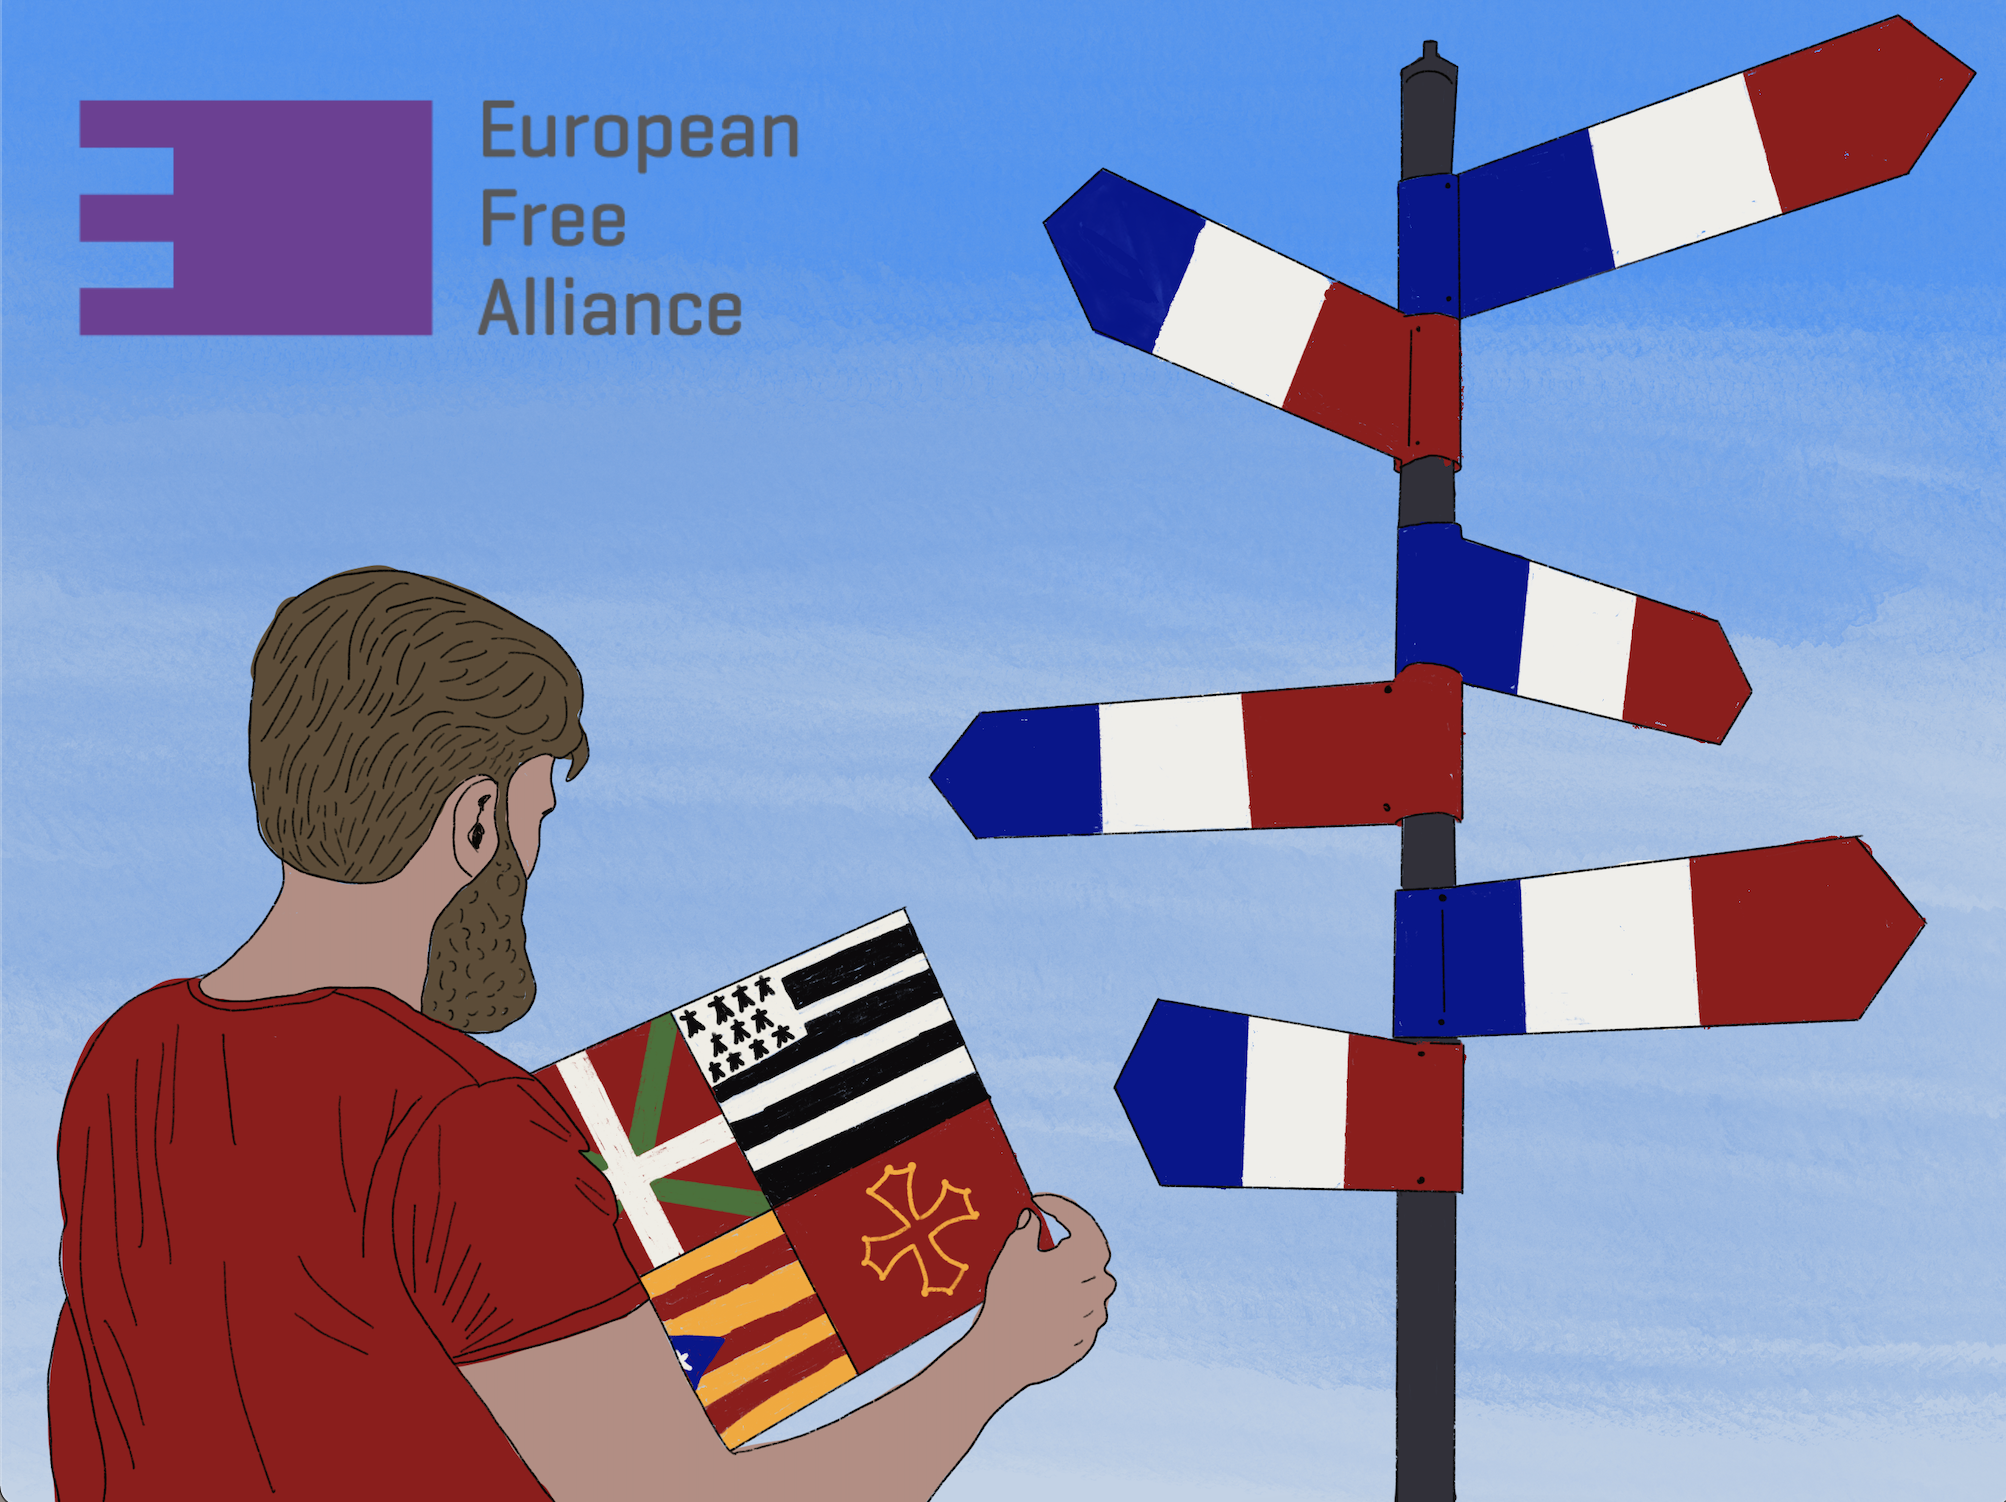 Molac's Law and Regional Languages: A Case Study for Europe